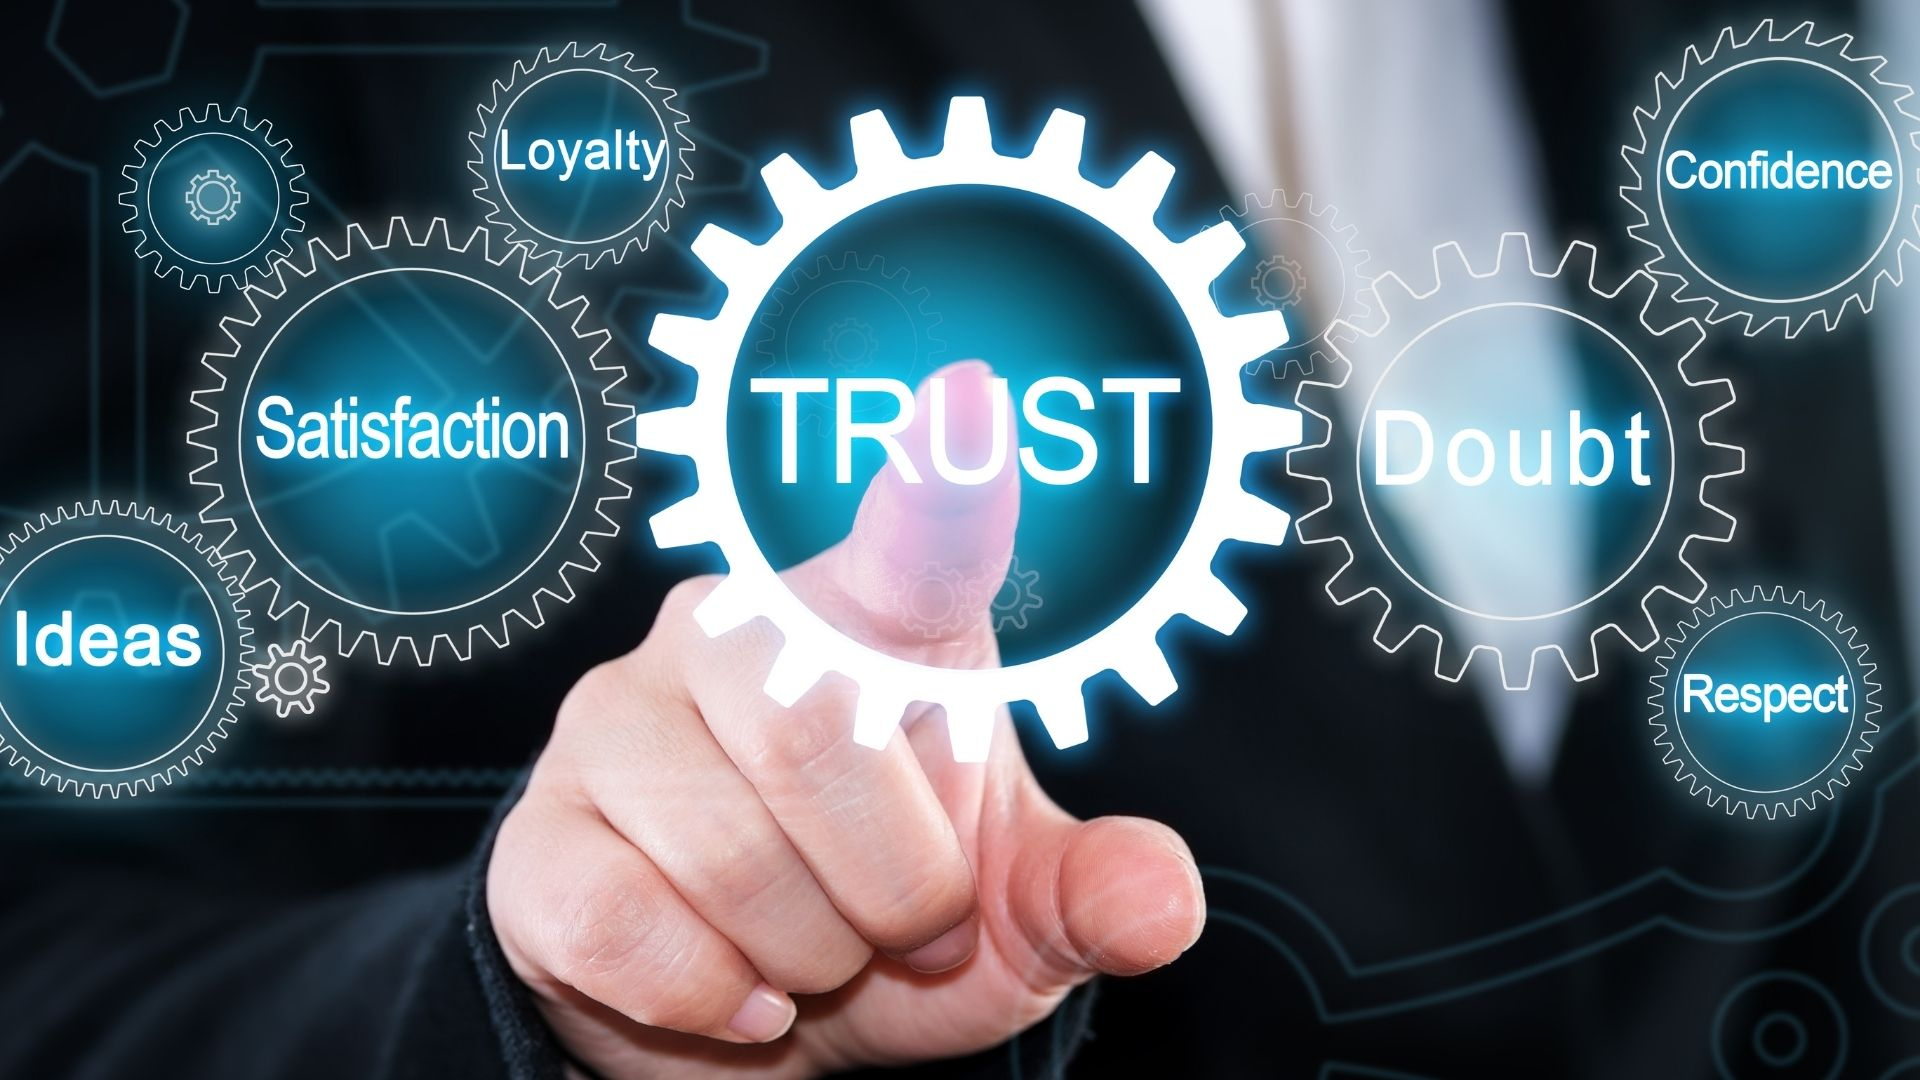 Managing vulnerability well to establish trust and loyalty 1